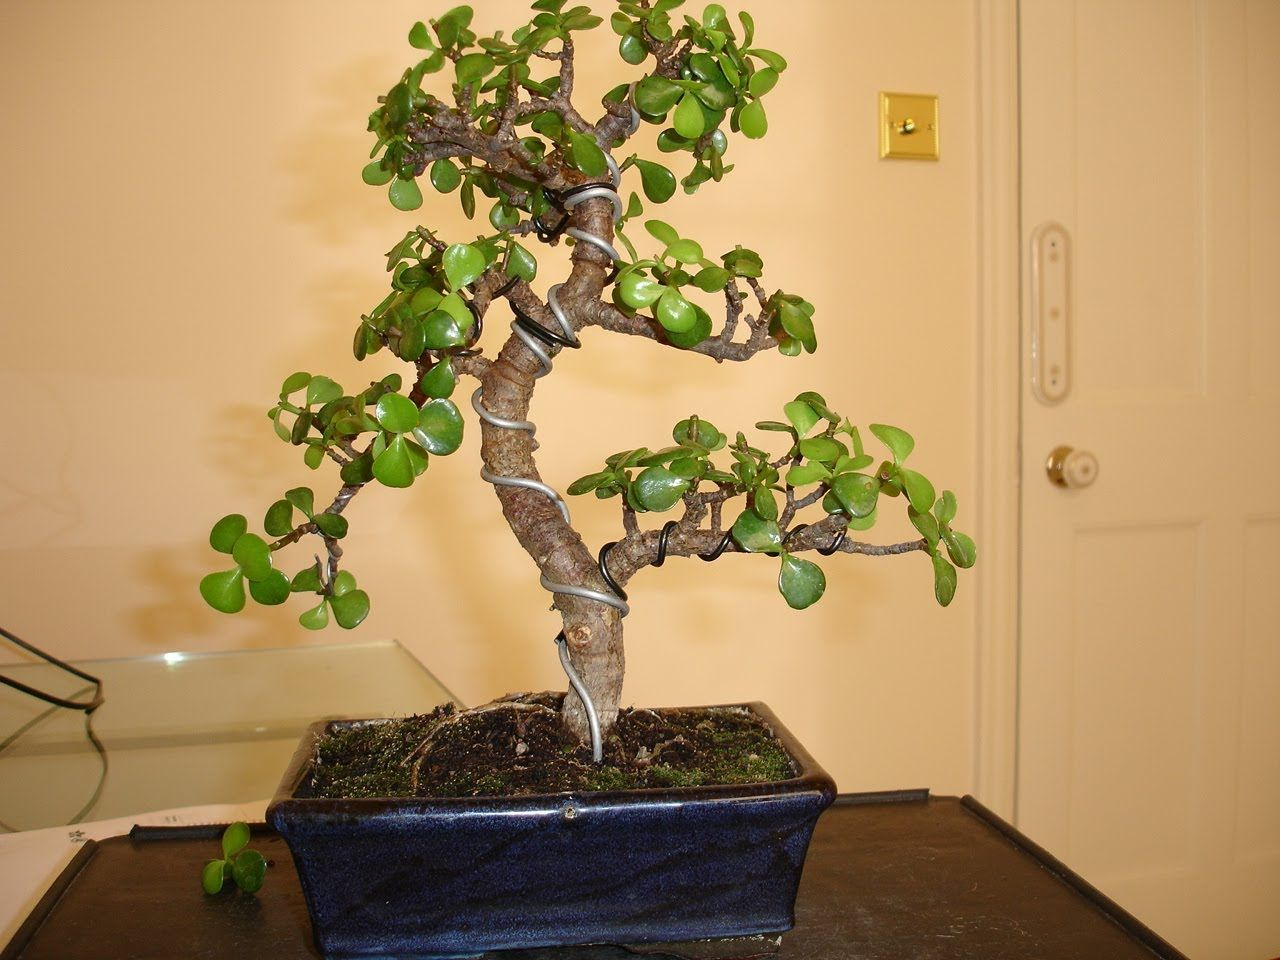 Bonsai Jade Wiring Pruning Jade Bonsai Jade Plant Bonsai Jade Plants